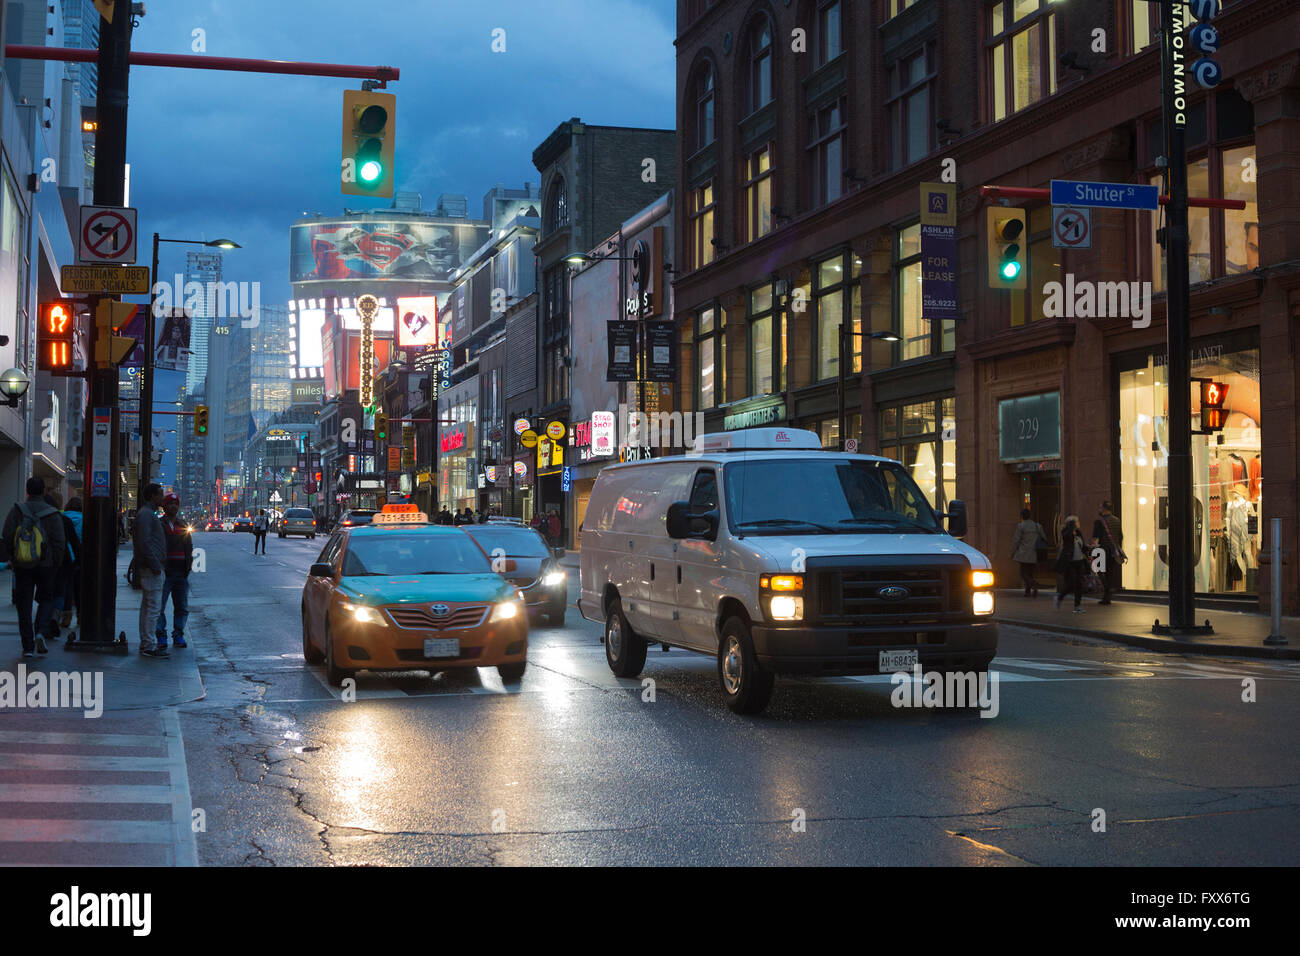 Yonge and Shuter intersection in downtown Toronto - Stock Image